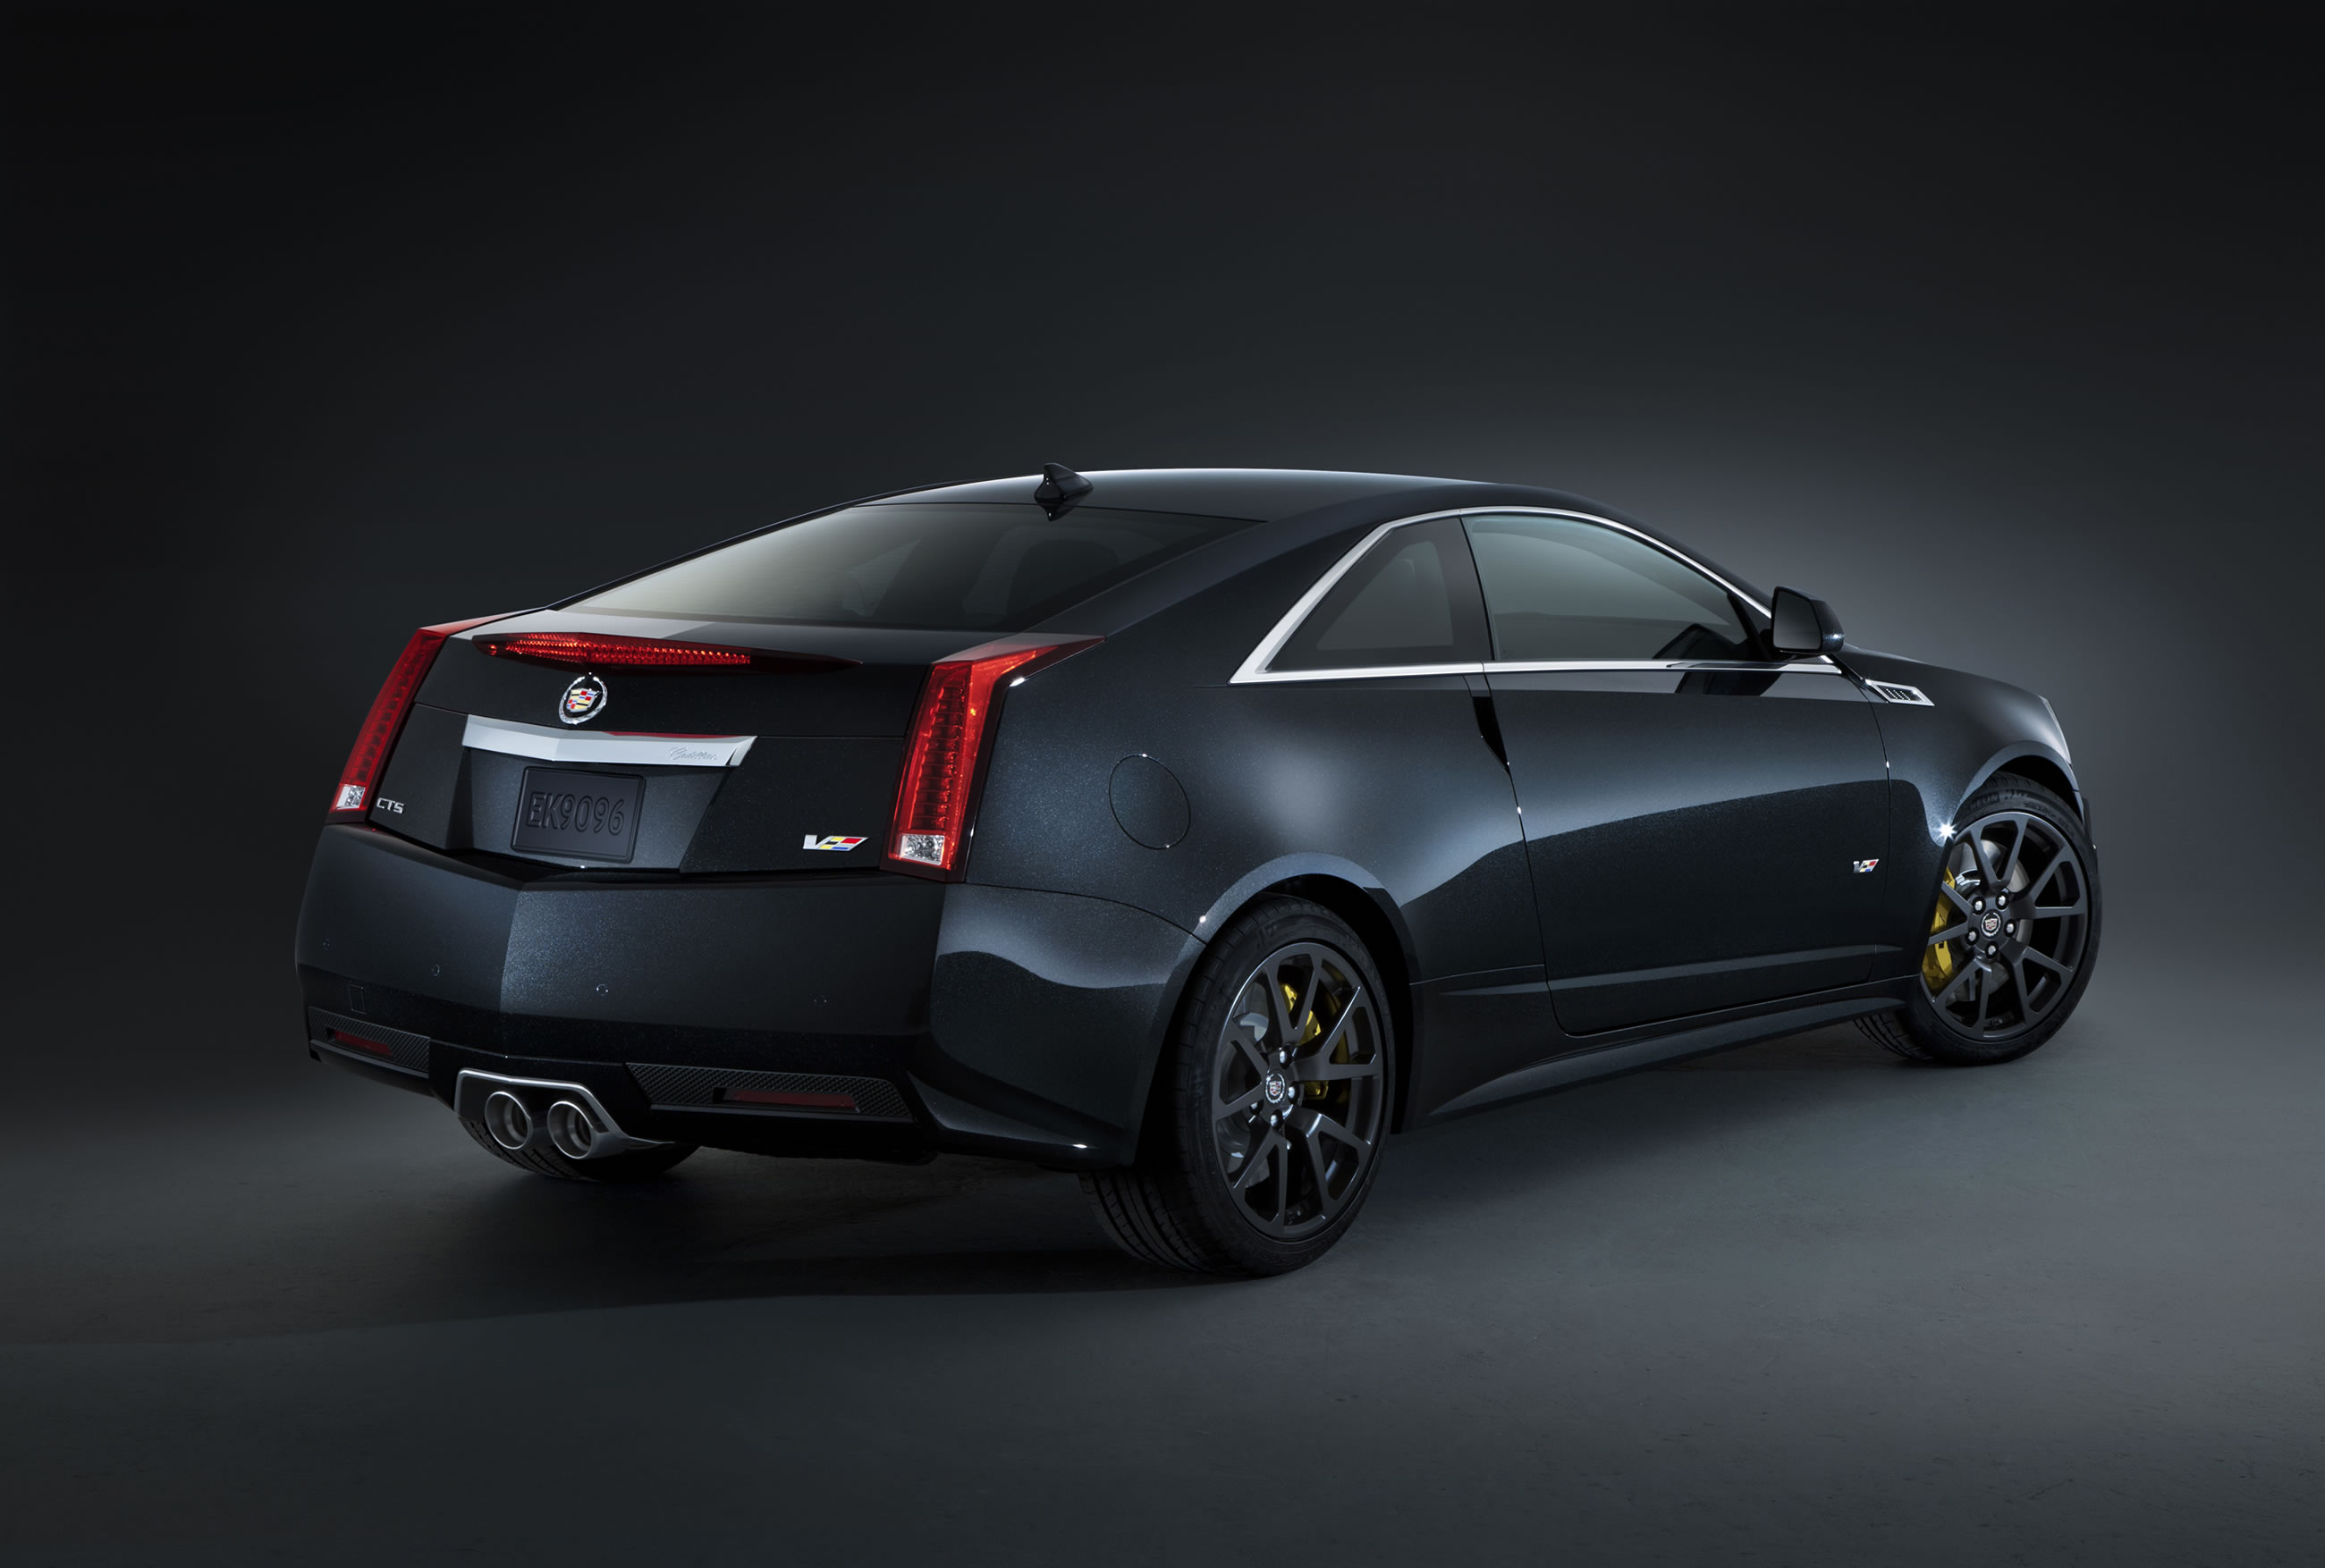 2014 Cadillac Cts V Coupe Photos Specs And Review Rs